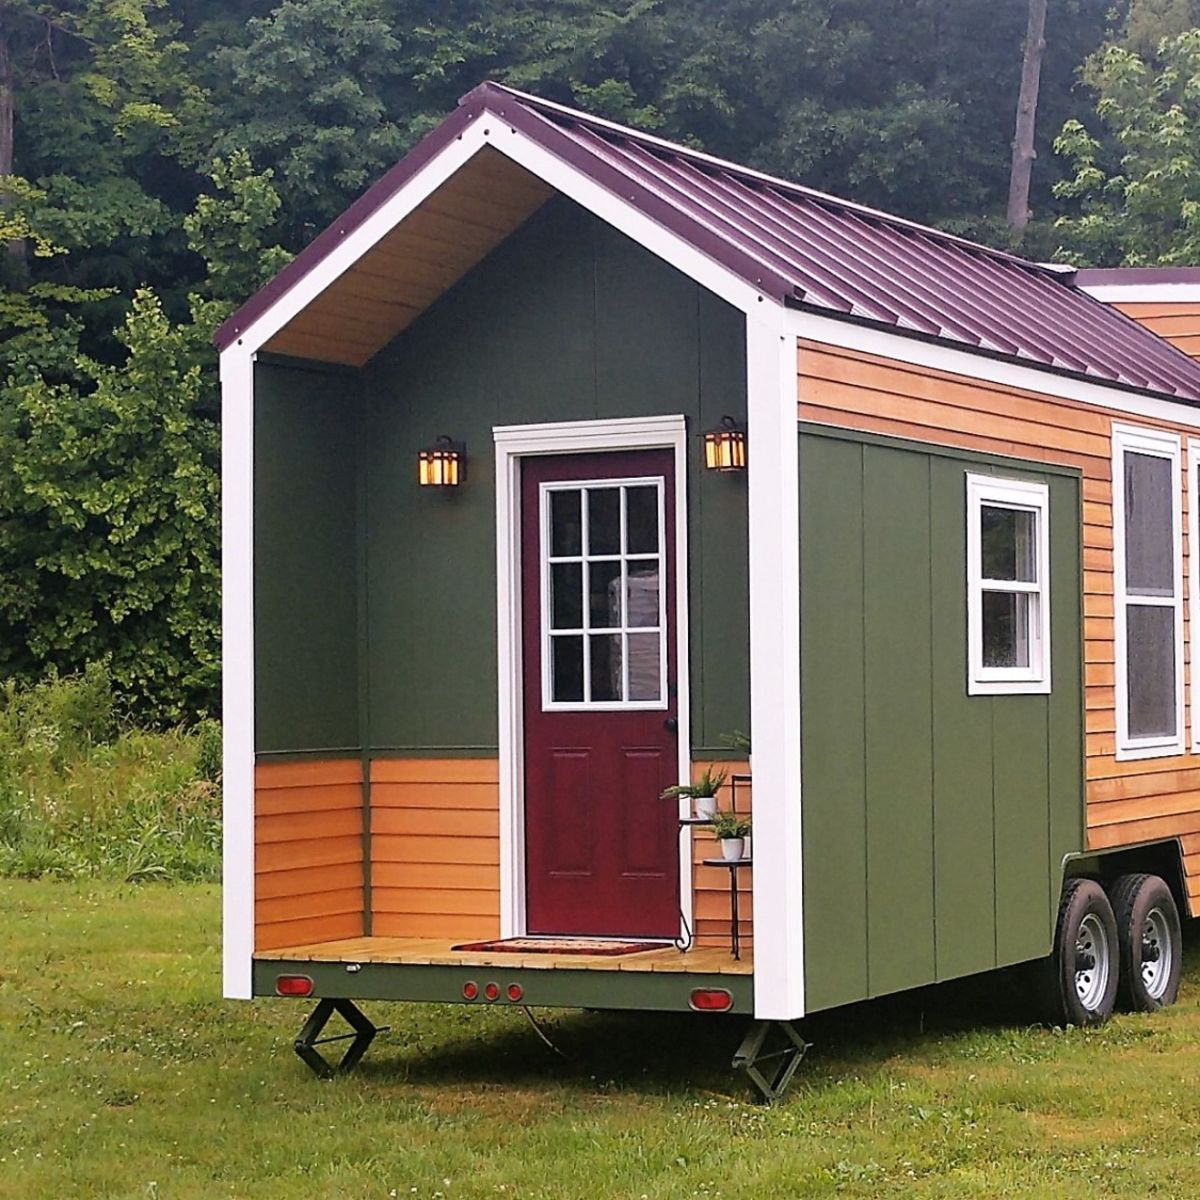 Kingfisher Tiny House For Sale In Evansville Indiana Tiny